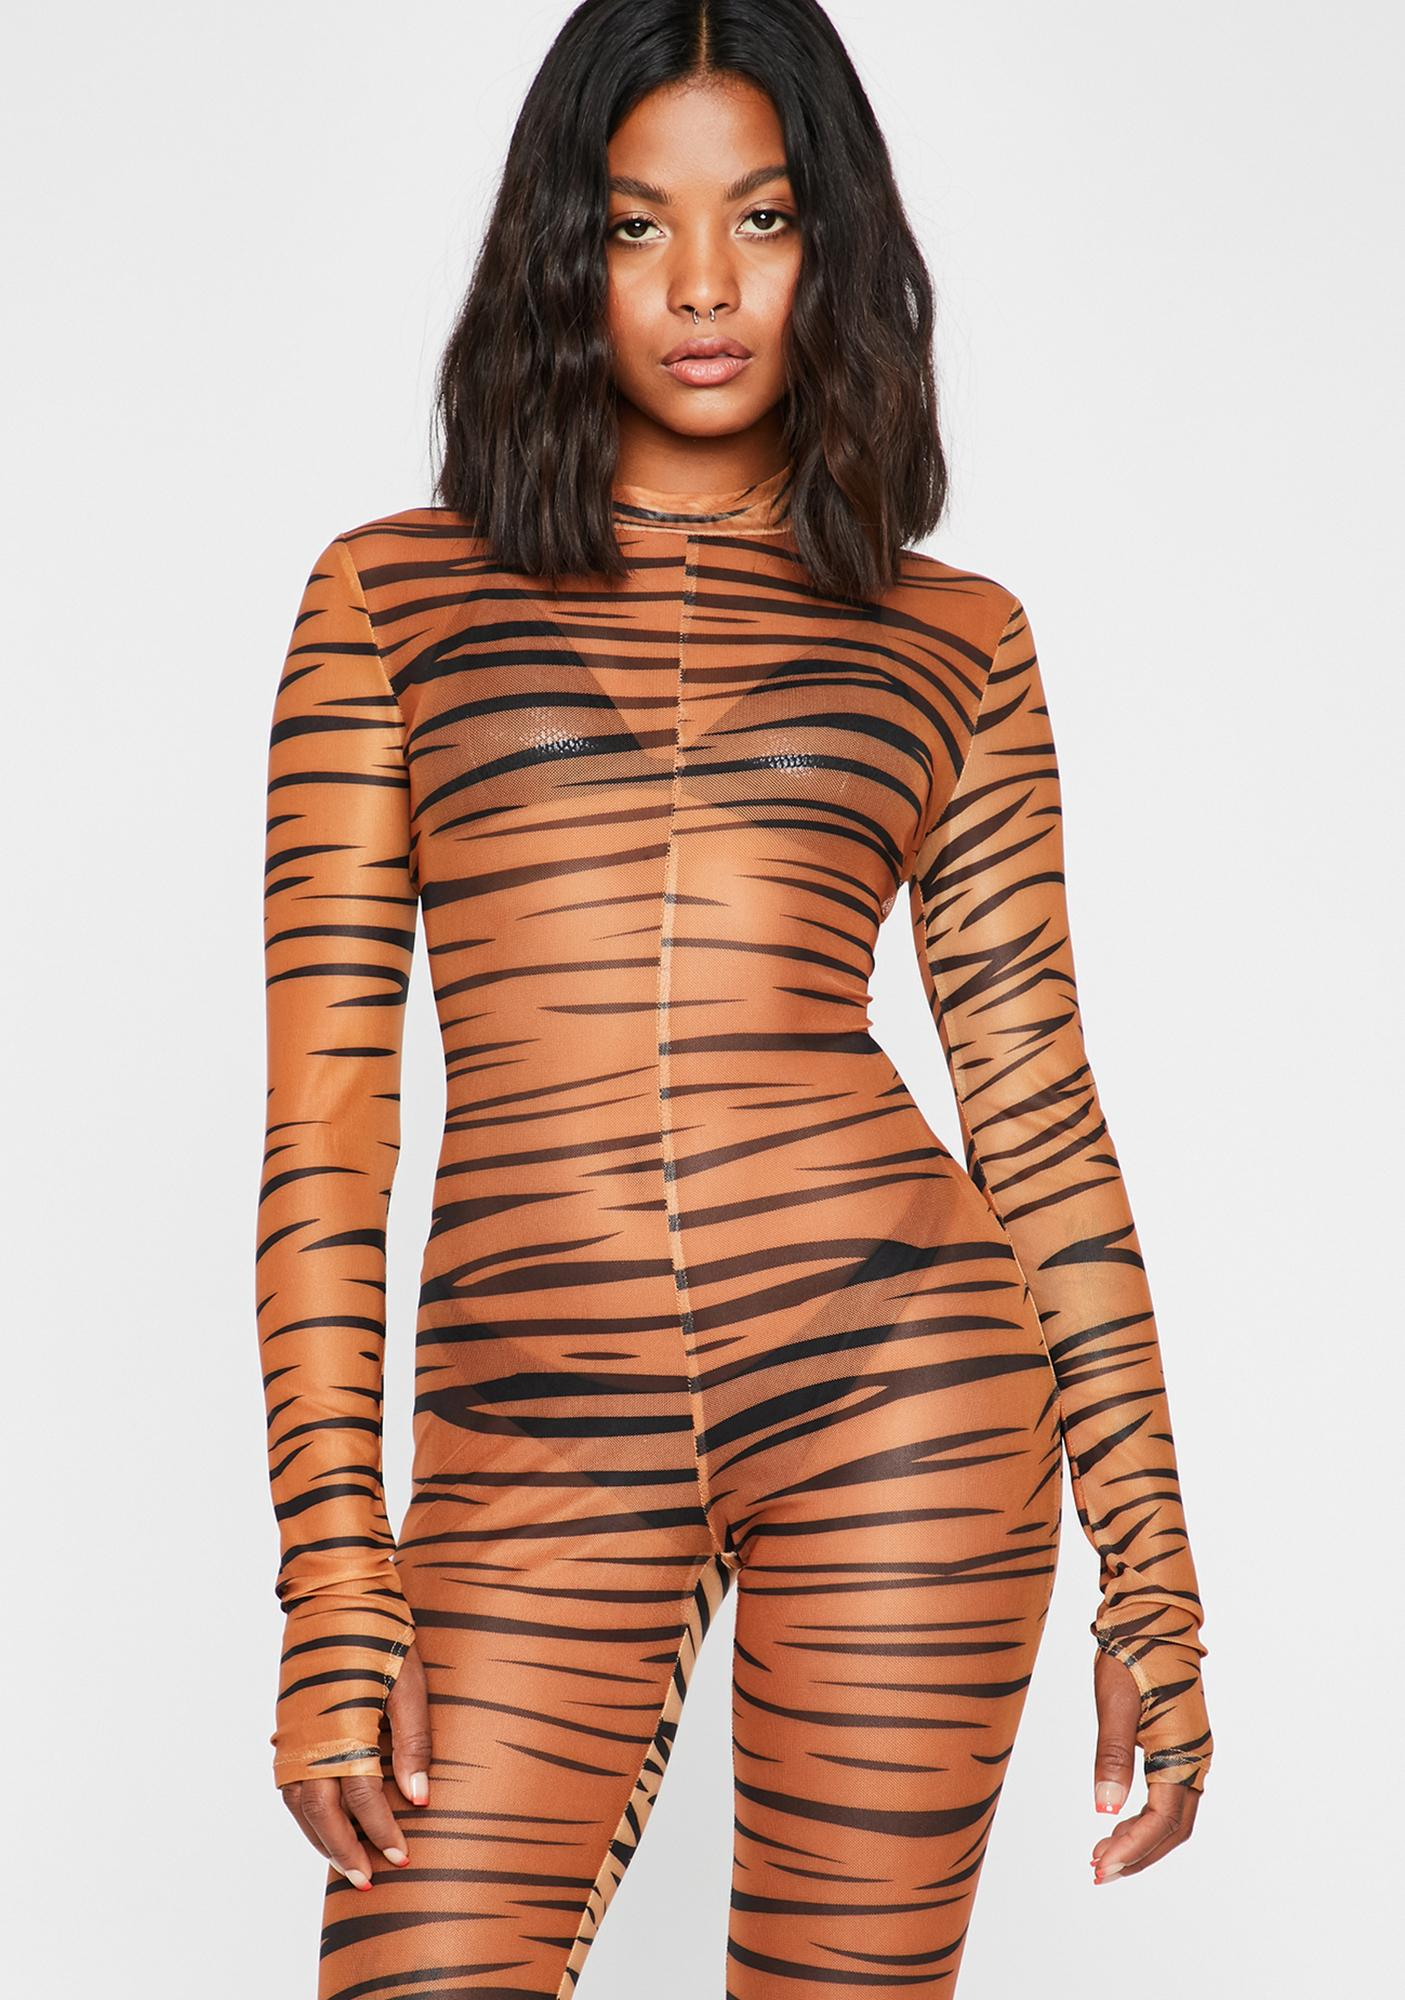 Play No Games Tiger Jumpsuit